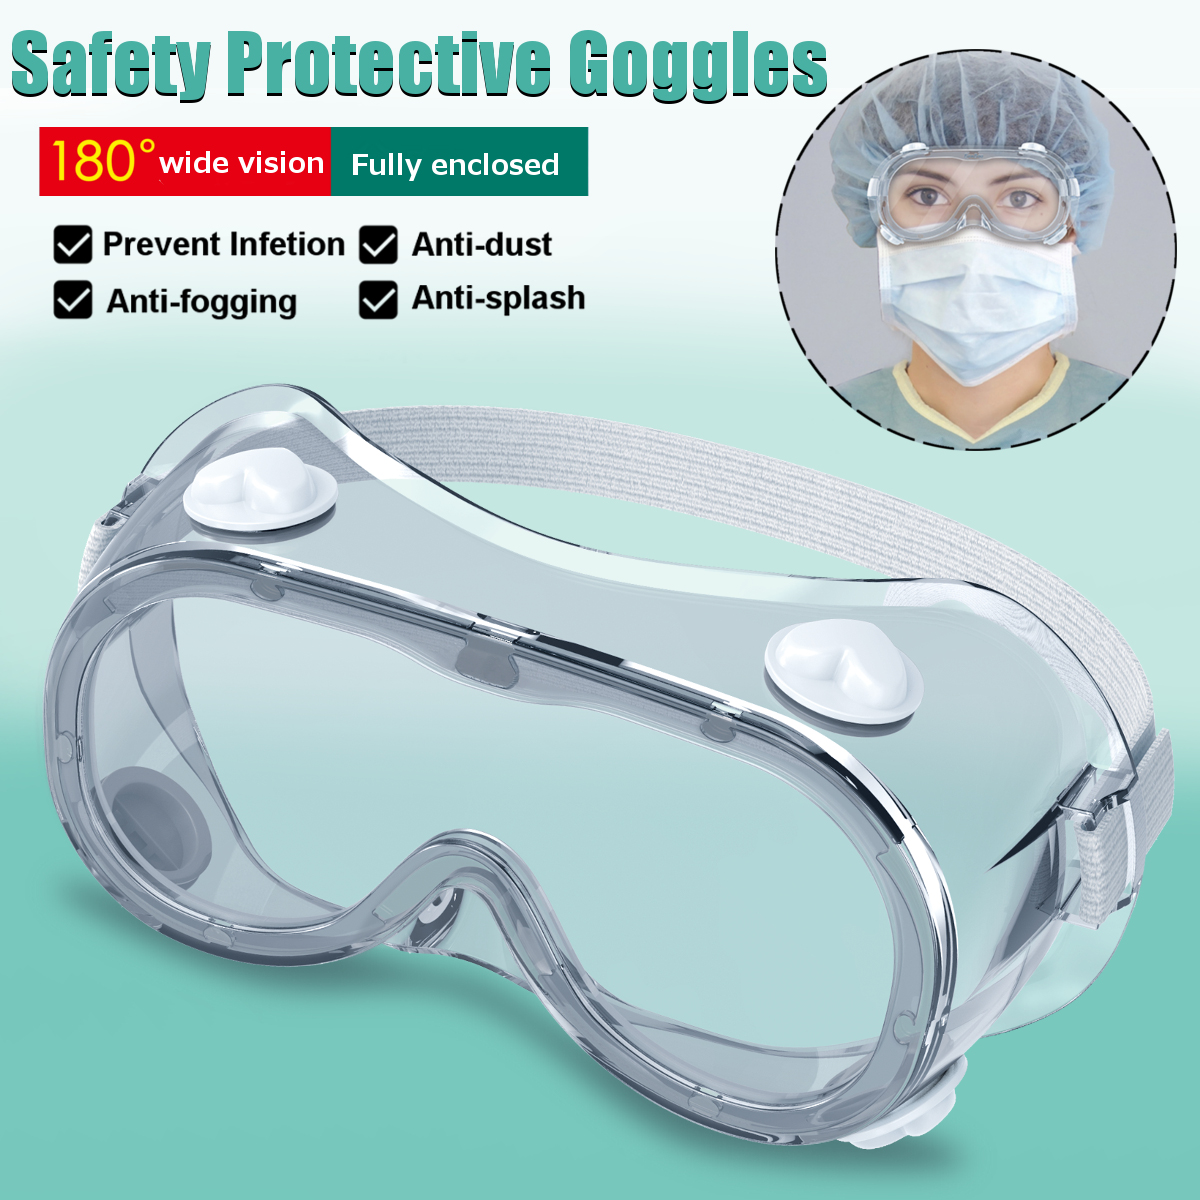 Safety Goggles Anti Fog Dust Proof Prevent Infection Eye Mask Scratch Resistant Protector Transparent